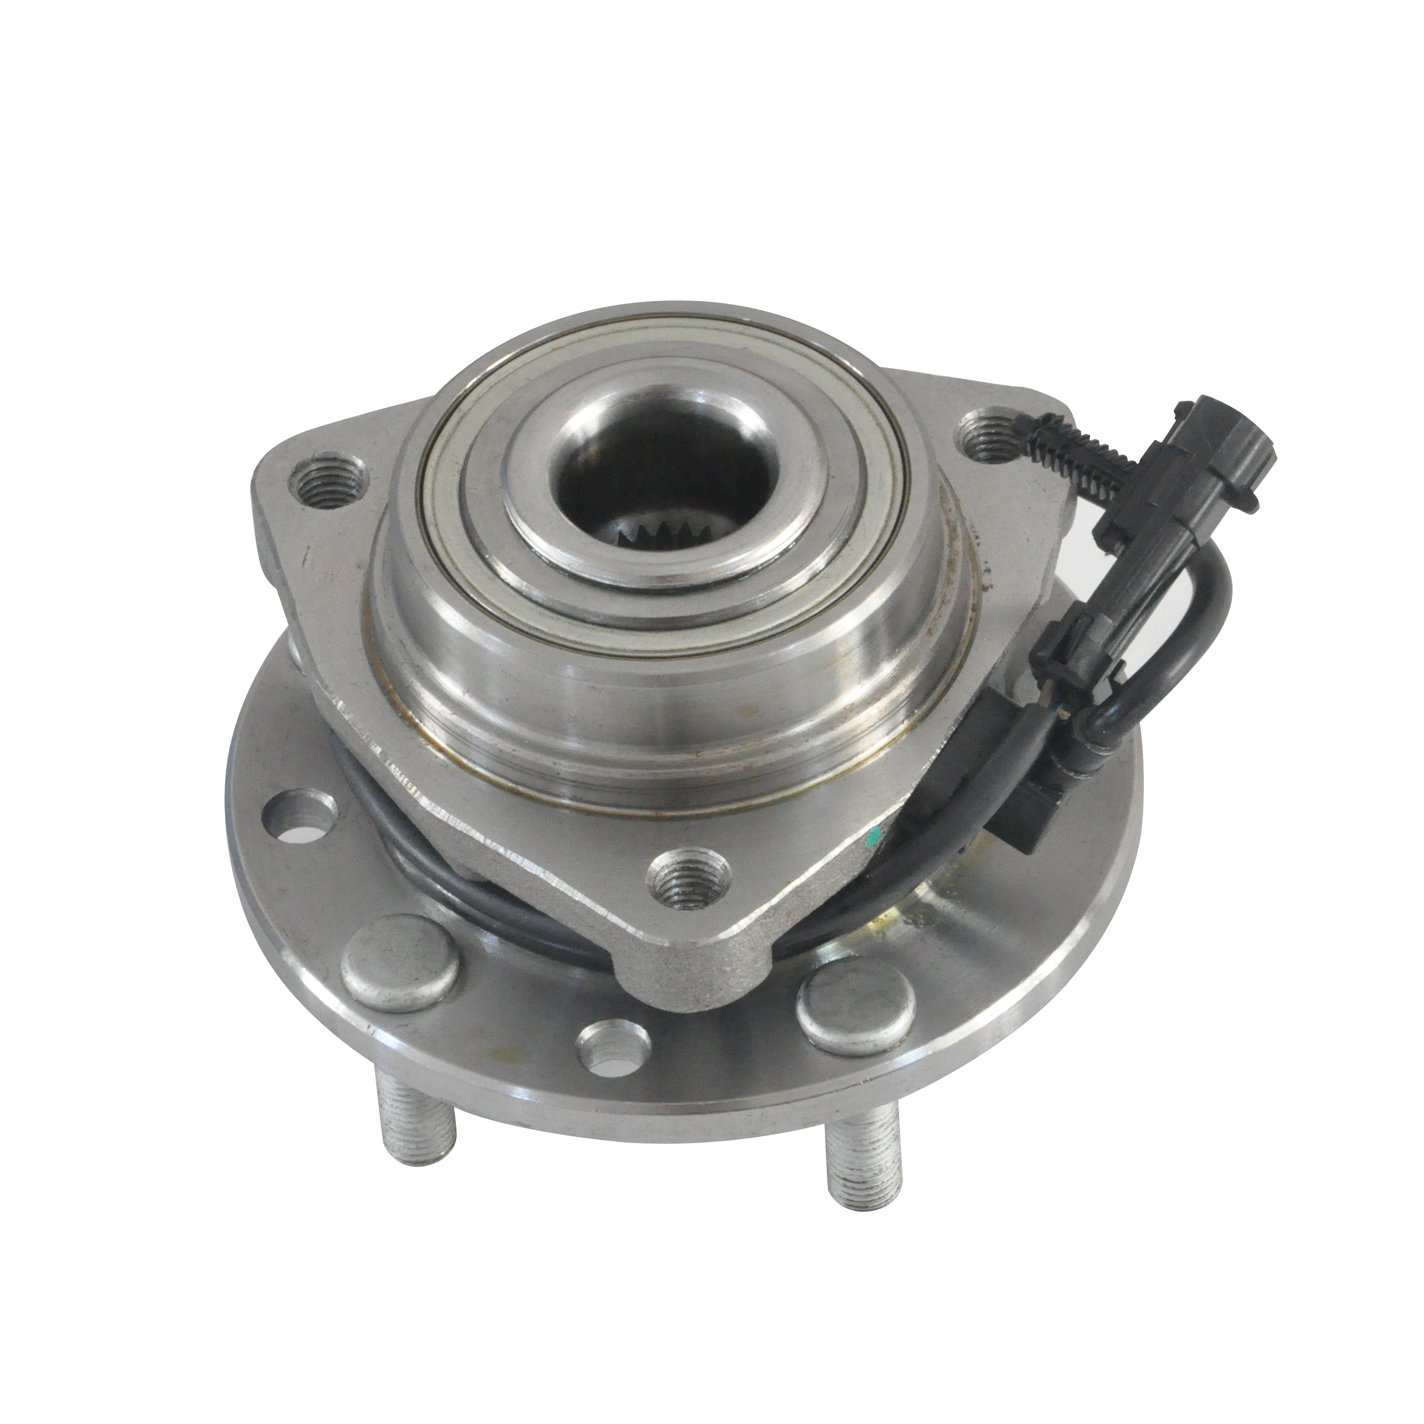 DRIVESTAR 4WD Only 513124 New Front LH or RH Hub Bearing Assembly for 4X4 w/ABS GMC Chevy GM Trucks